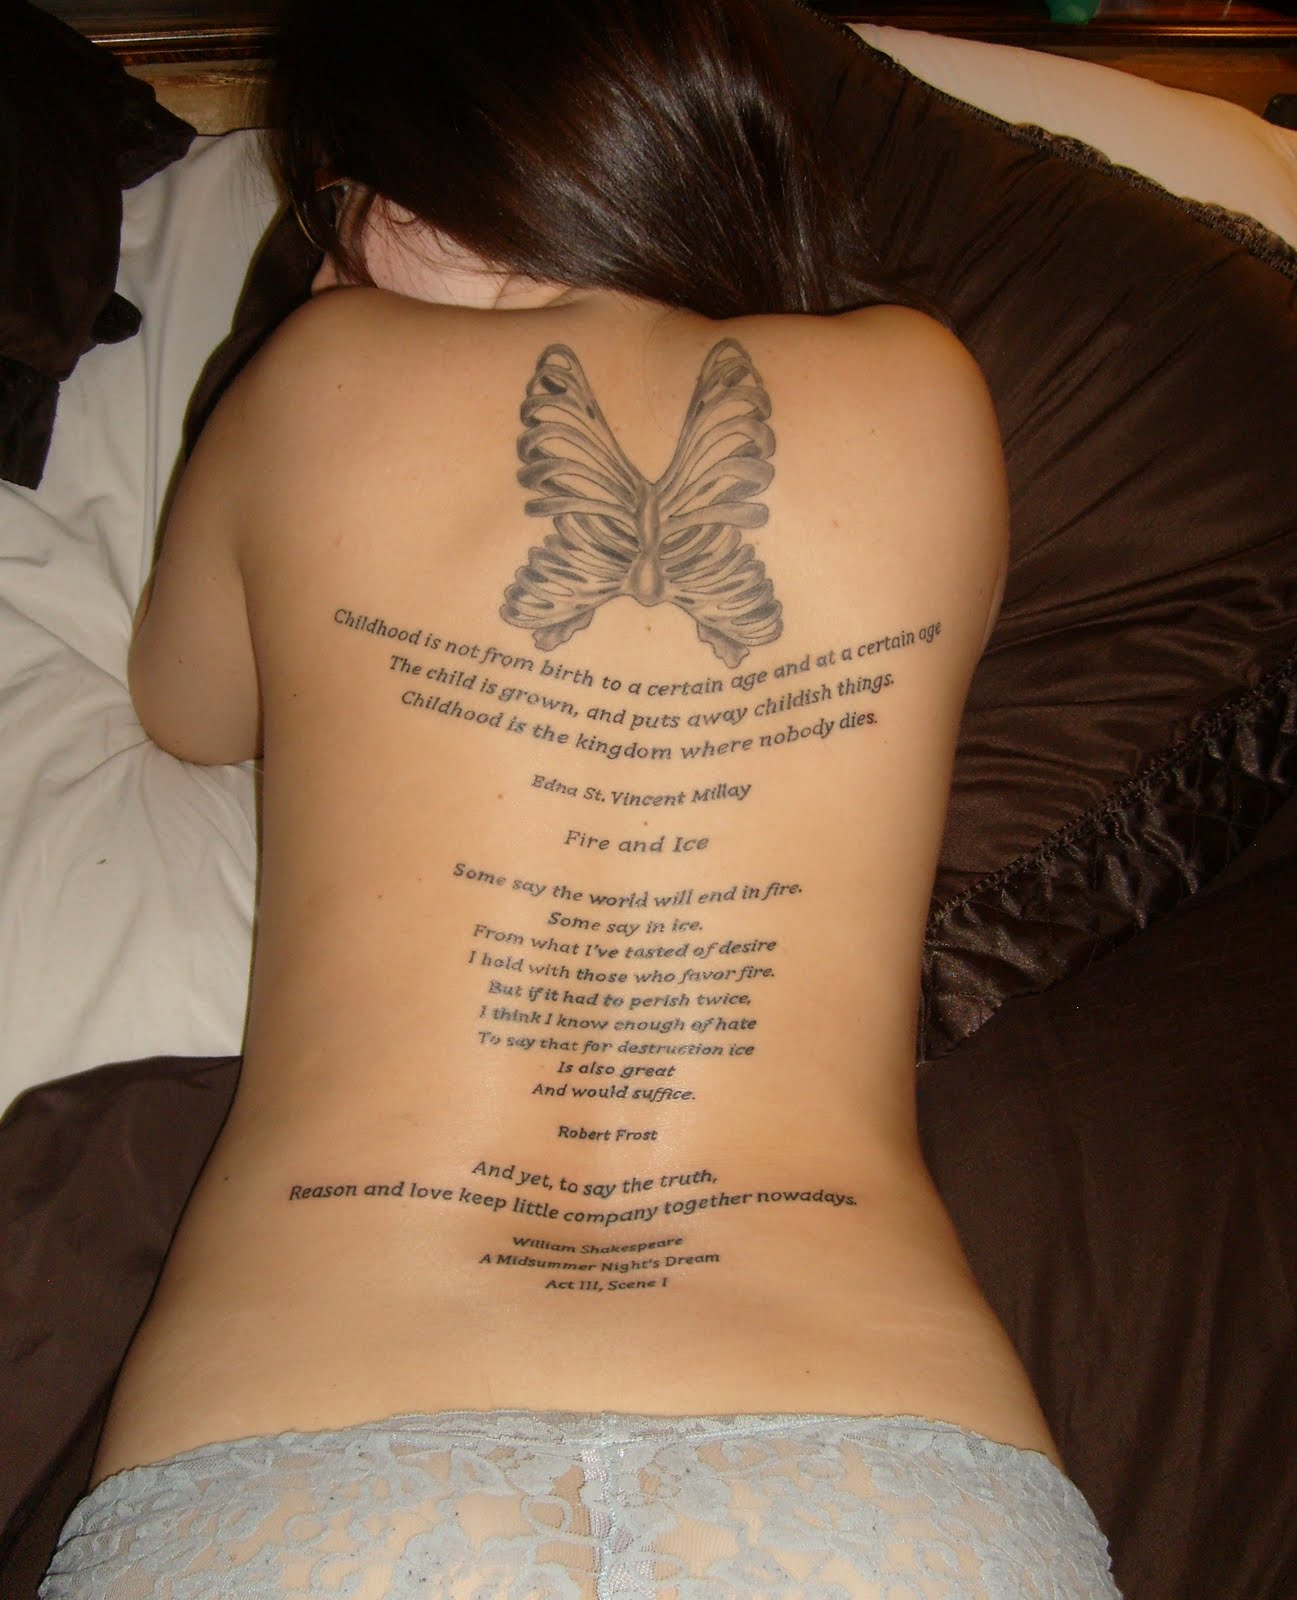 http://2.bp.blogspot.com/-HO8zrERdUDQ/TlcJ7iItcwI/AAAAAAAAAPs/N4TXtZFOPpE/s1600/Tattoo%20Quotes%20For%20Girls3.jpg